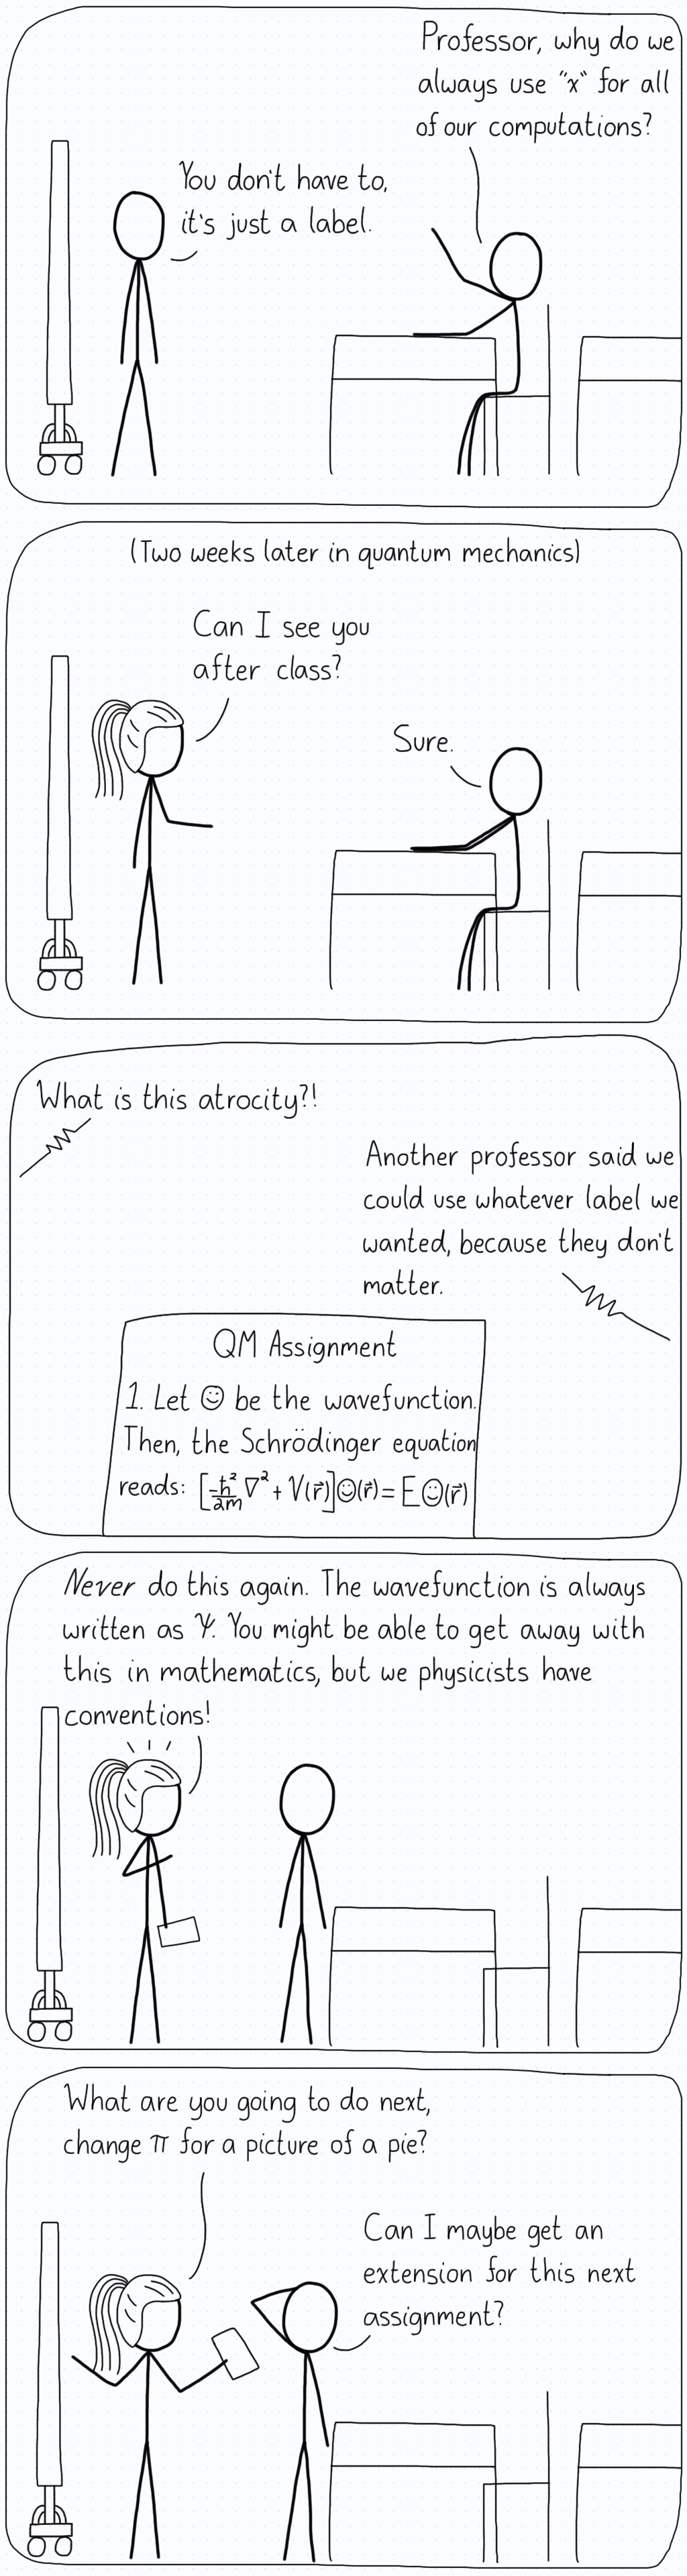 "First panel. Student: ""Professor, why do we always use 'x' for all of our computations?"" Professor 1: ""You don't have to, it's just a label."" Second panel, two weeks later in quantum mechanics. Professor 2: ""Can I see you after class?"" Student: ""Sure."" Third panel, Professor 2 pointing to the student's homework, which replaced the standard symbol for the wavefunction with a smiley face. Professor 2: ""What is this atrocity?!"" Student: ""Another professor said we could use whatever label we wanted, because they don't matter."" Fourth panel. Professor 2: ""Never do this again. The wavefunction is always written as psi. You might be able to get away with this in mathematics, but we physicists have conventions!"" Fifth panel. Professor 2: ""What are you going to do next, change pi for a picture of a pie?"" Student scratching their head: ""Can I maybe get an extension for this next assignment?"""